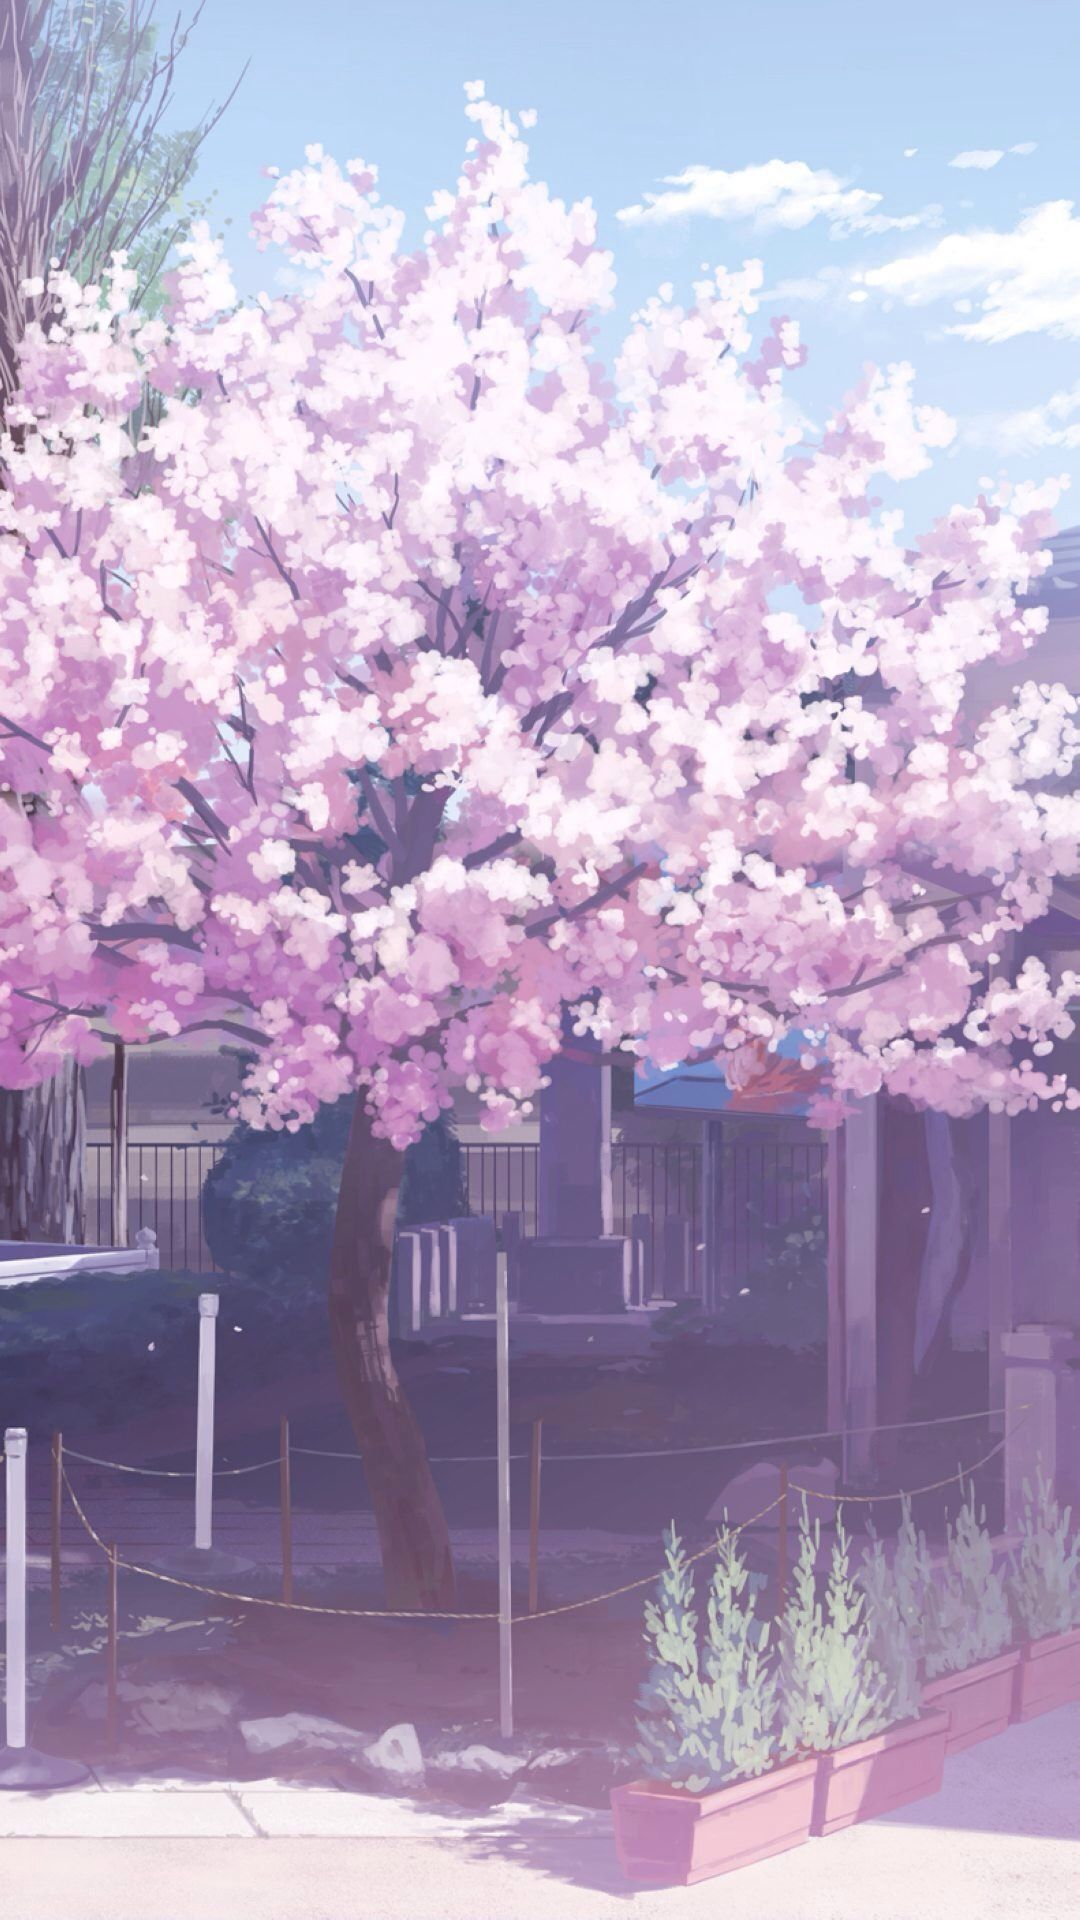 Cartoon Cherry Blossom Wallpapers Top Free Cartoon Cherry Blossom Backgrounds Wallpaperaccess